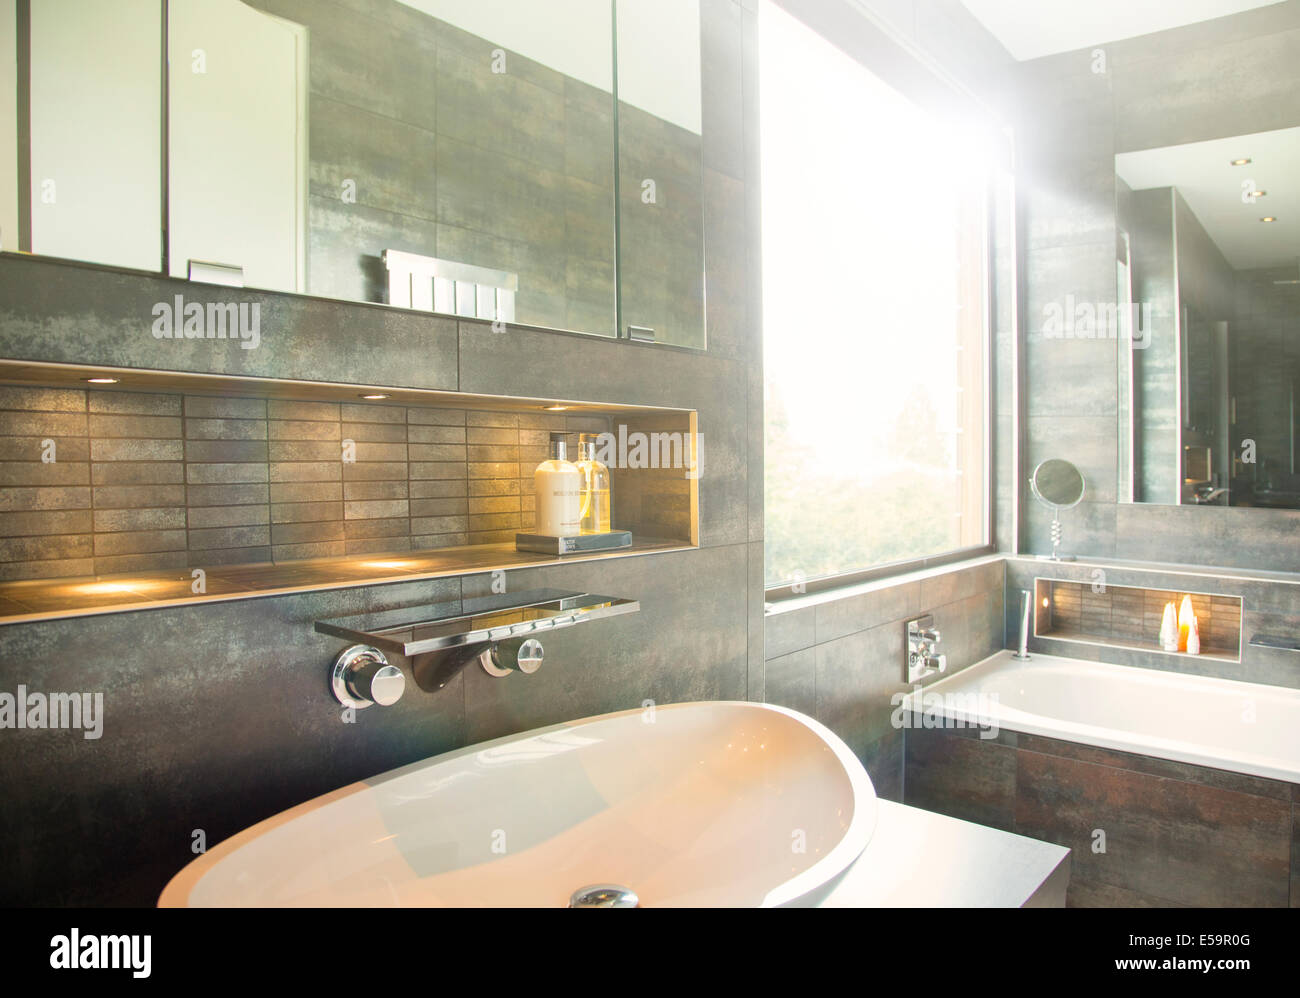 Mirror and sink in modern bathroom - Stock Image